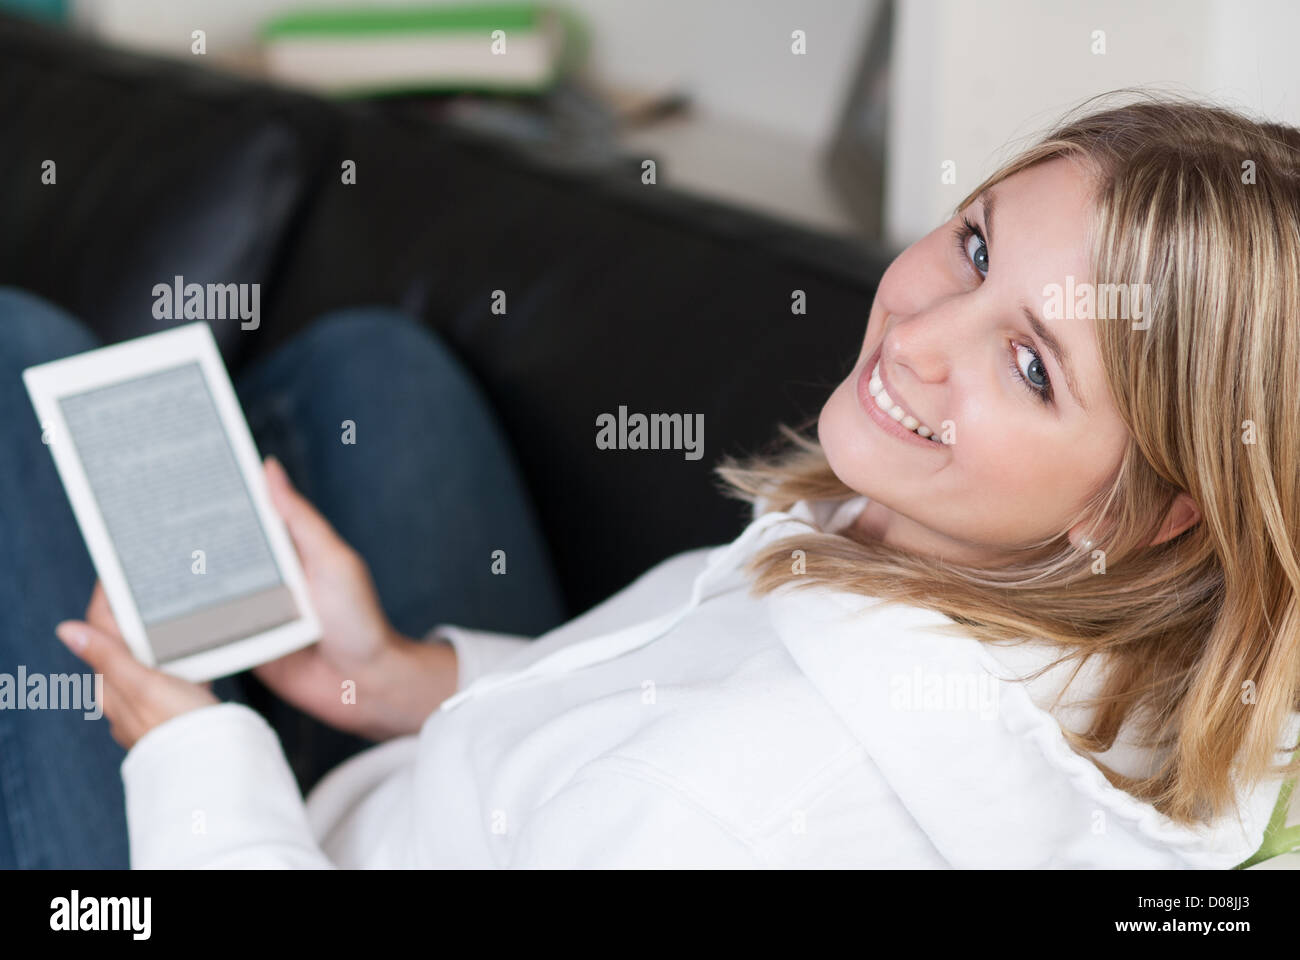 Young beautiful woman sits on a couch with an eBook Reader in her hands - Stock Image